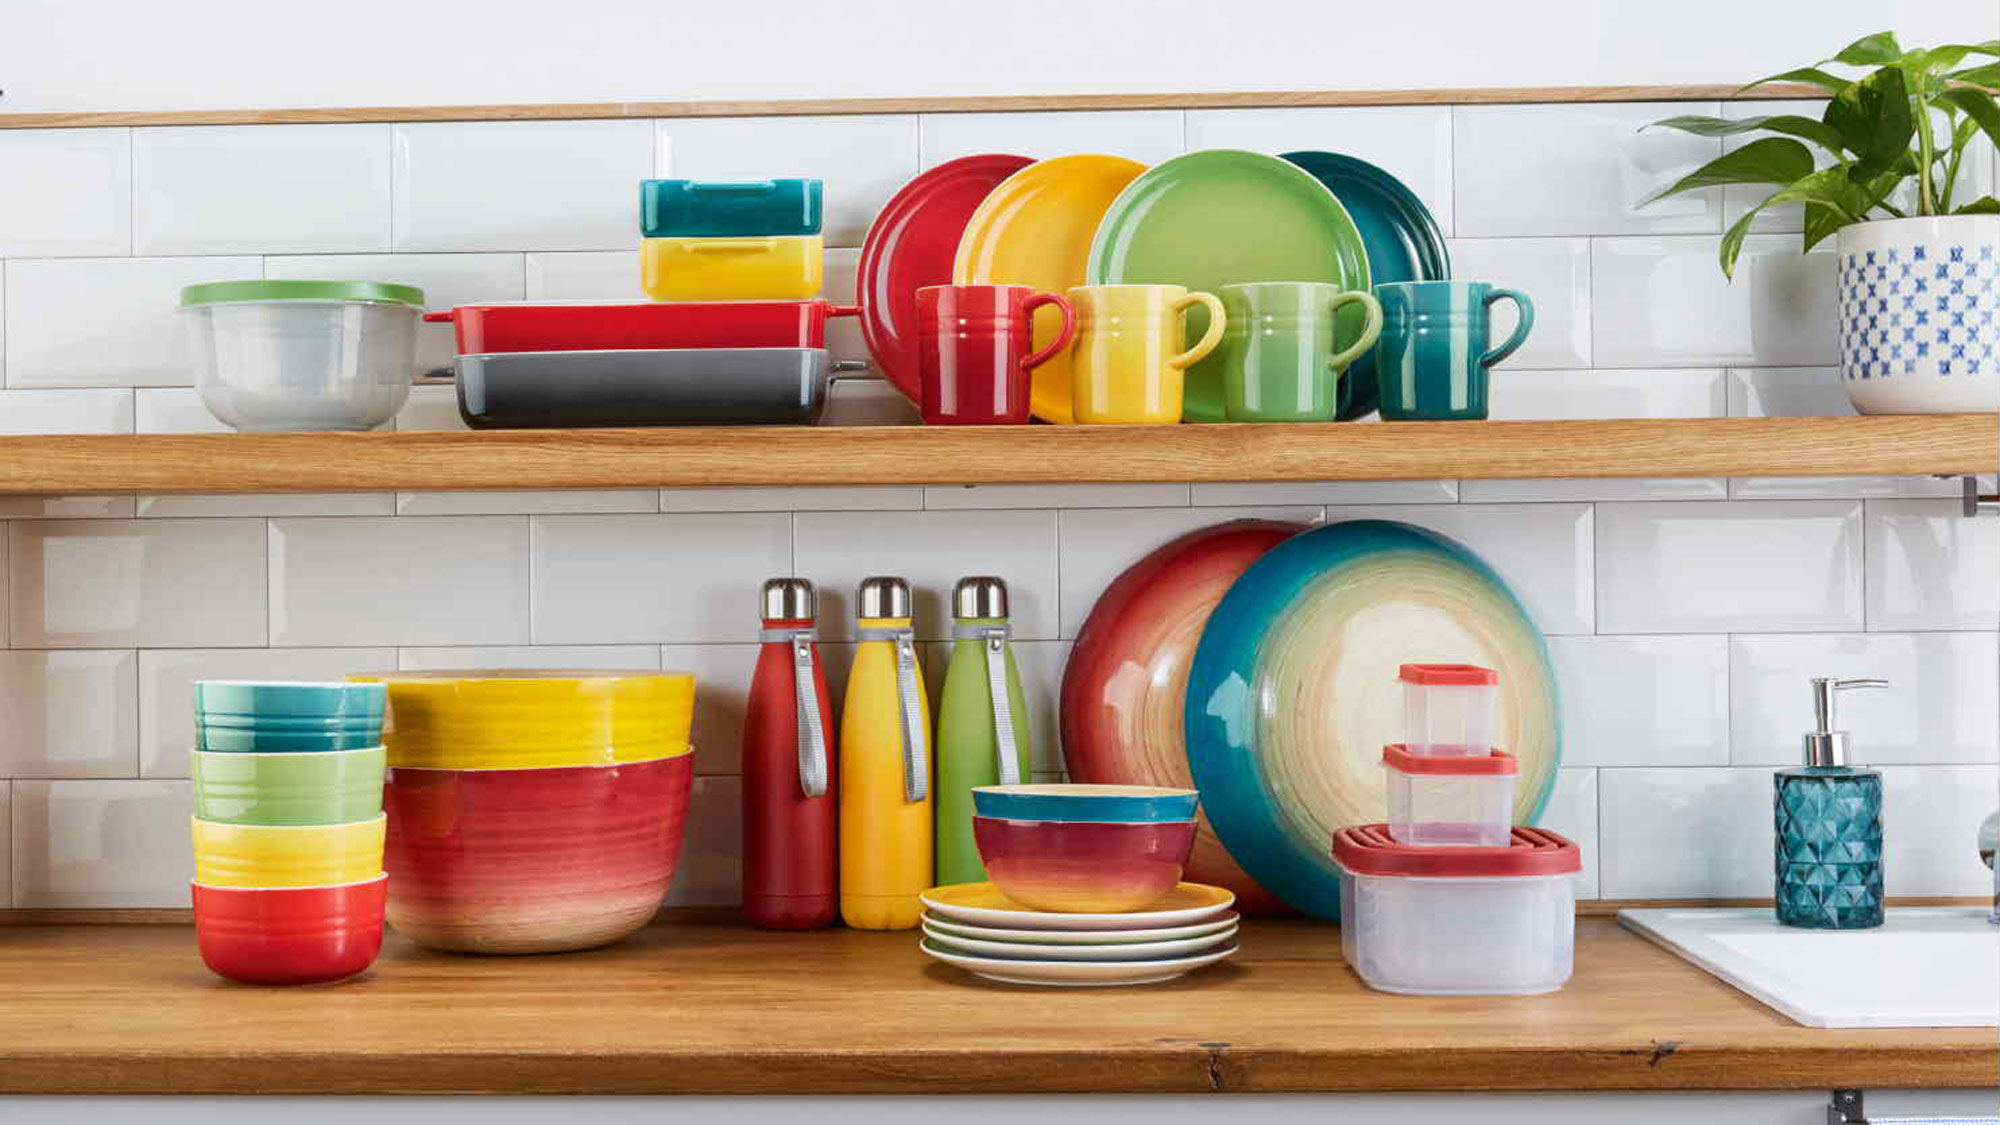 Lidl just launched a rainbow cookware set that looks like Le Creuset